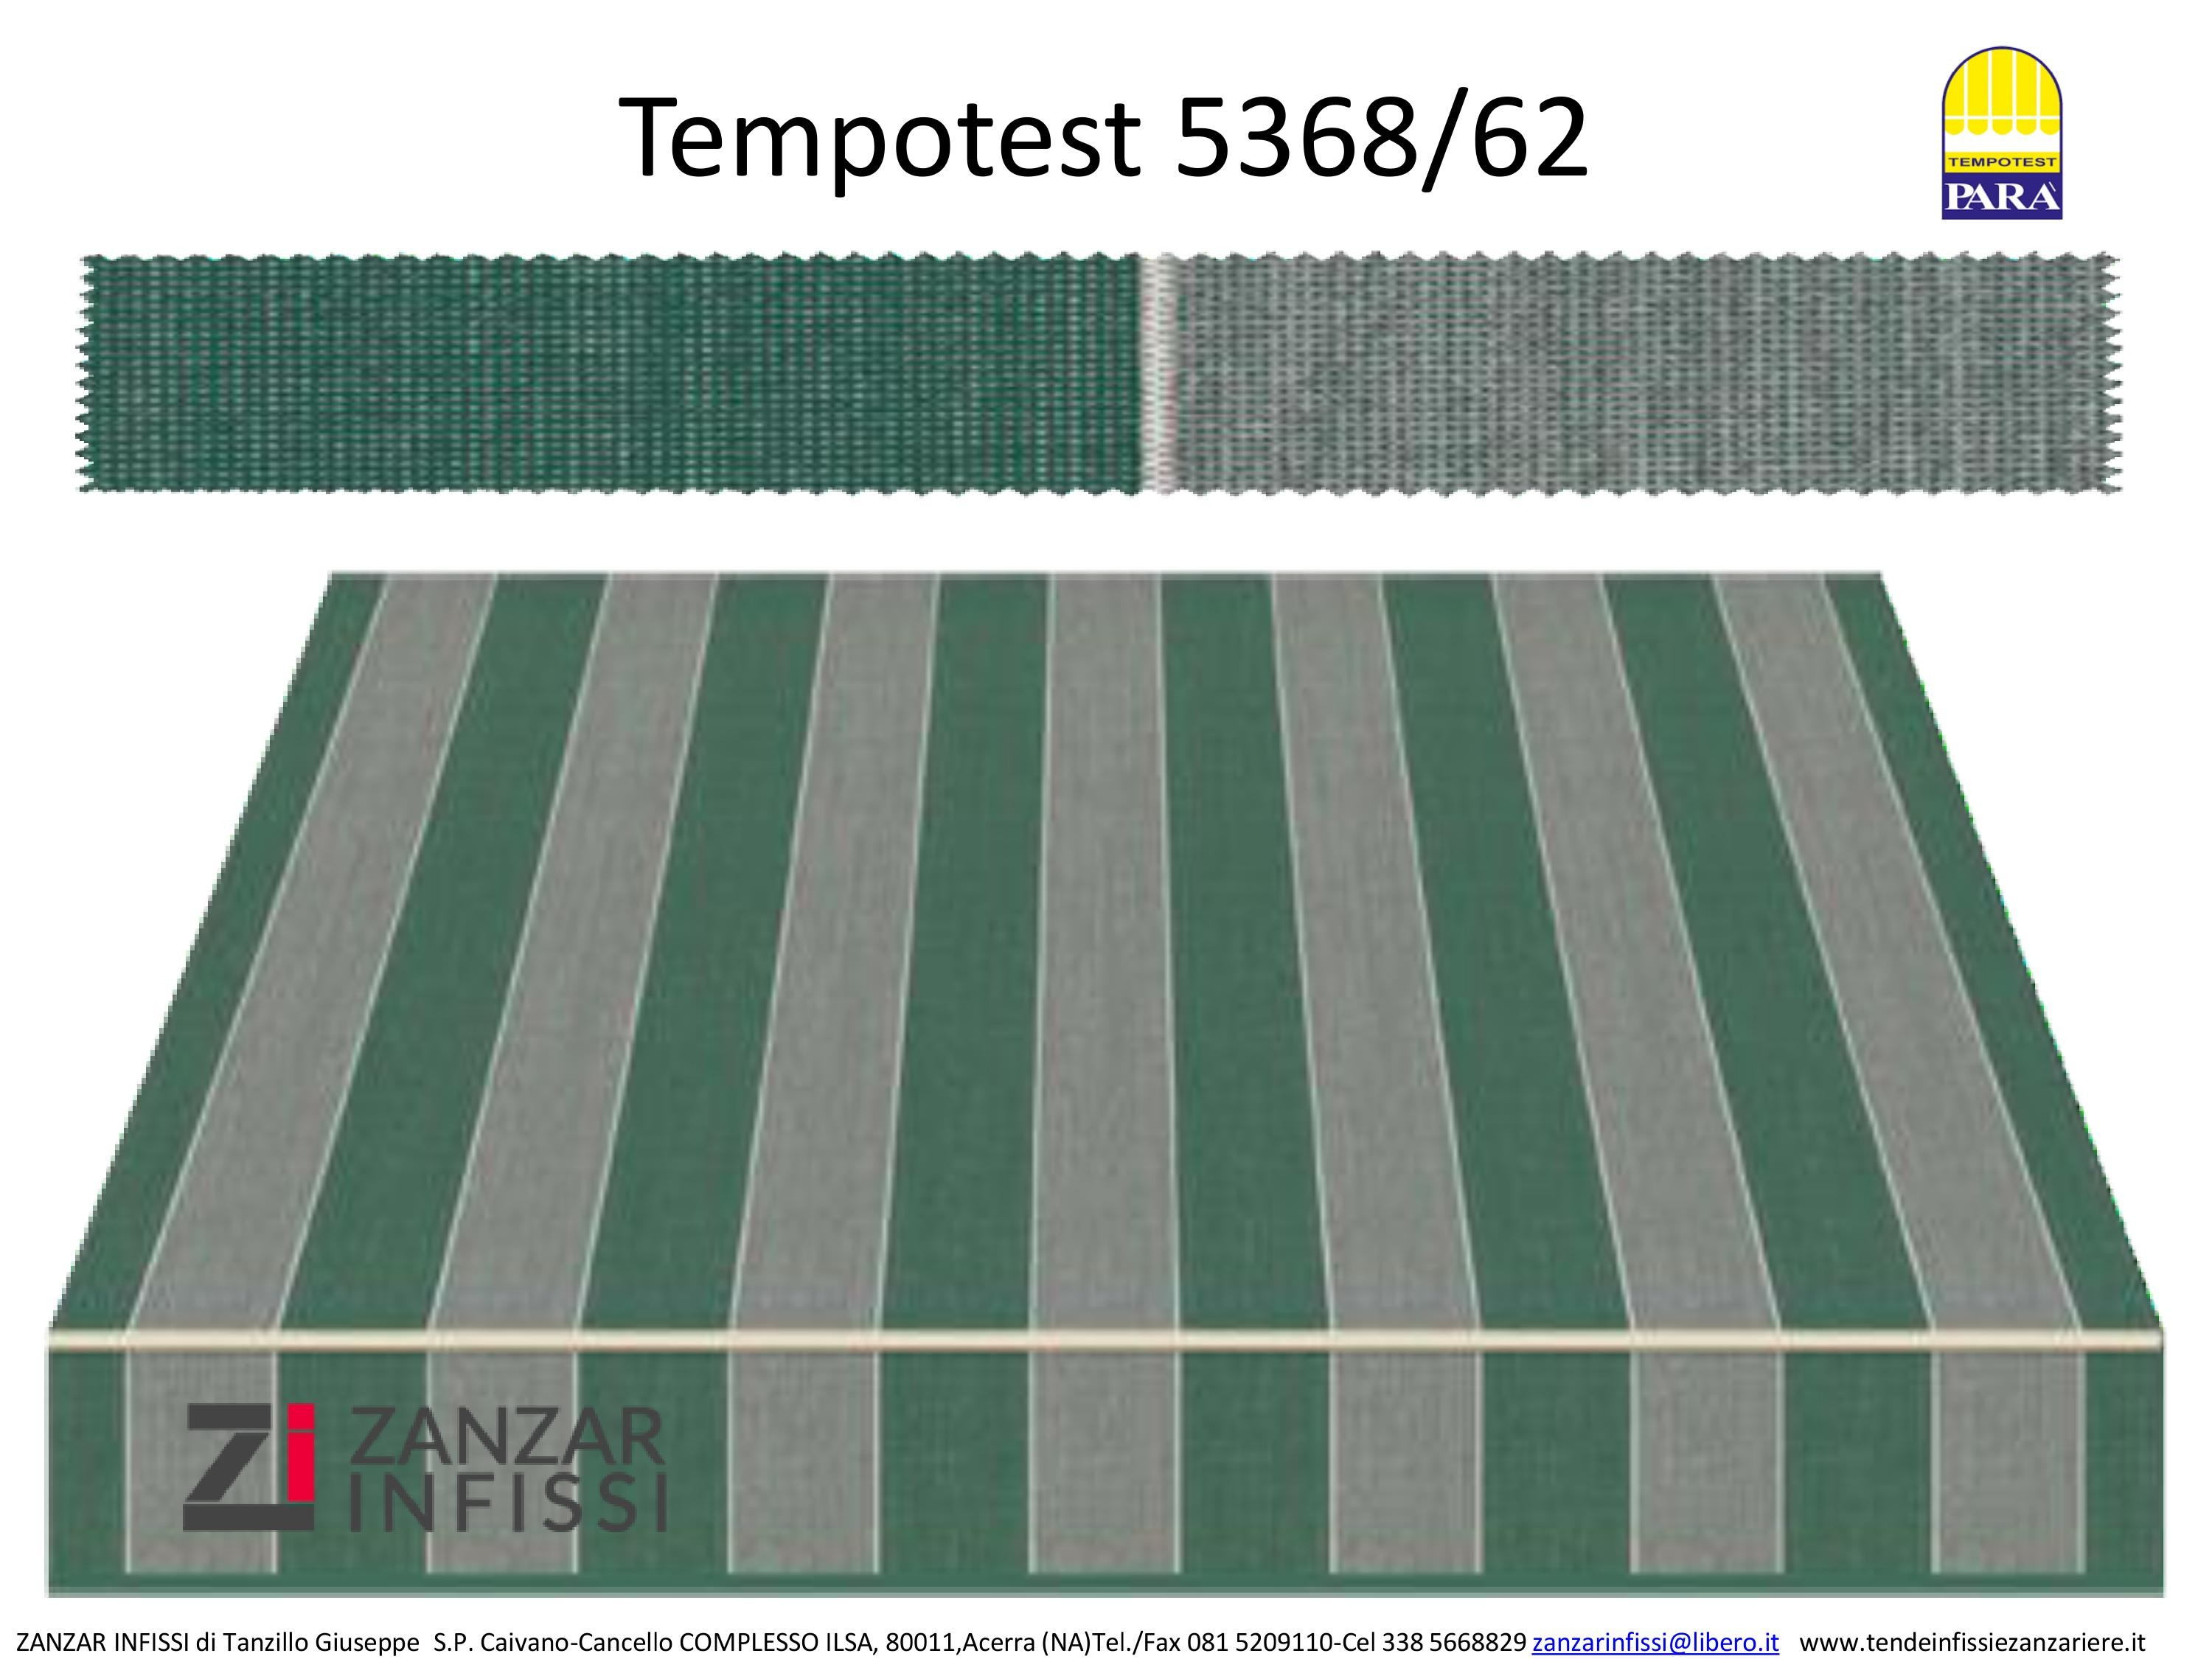 Tempotest 5368/62